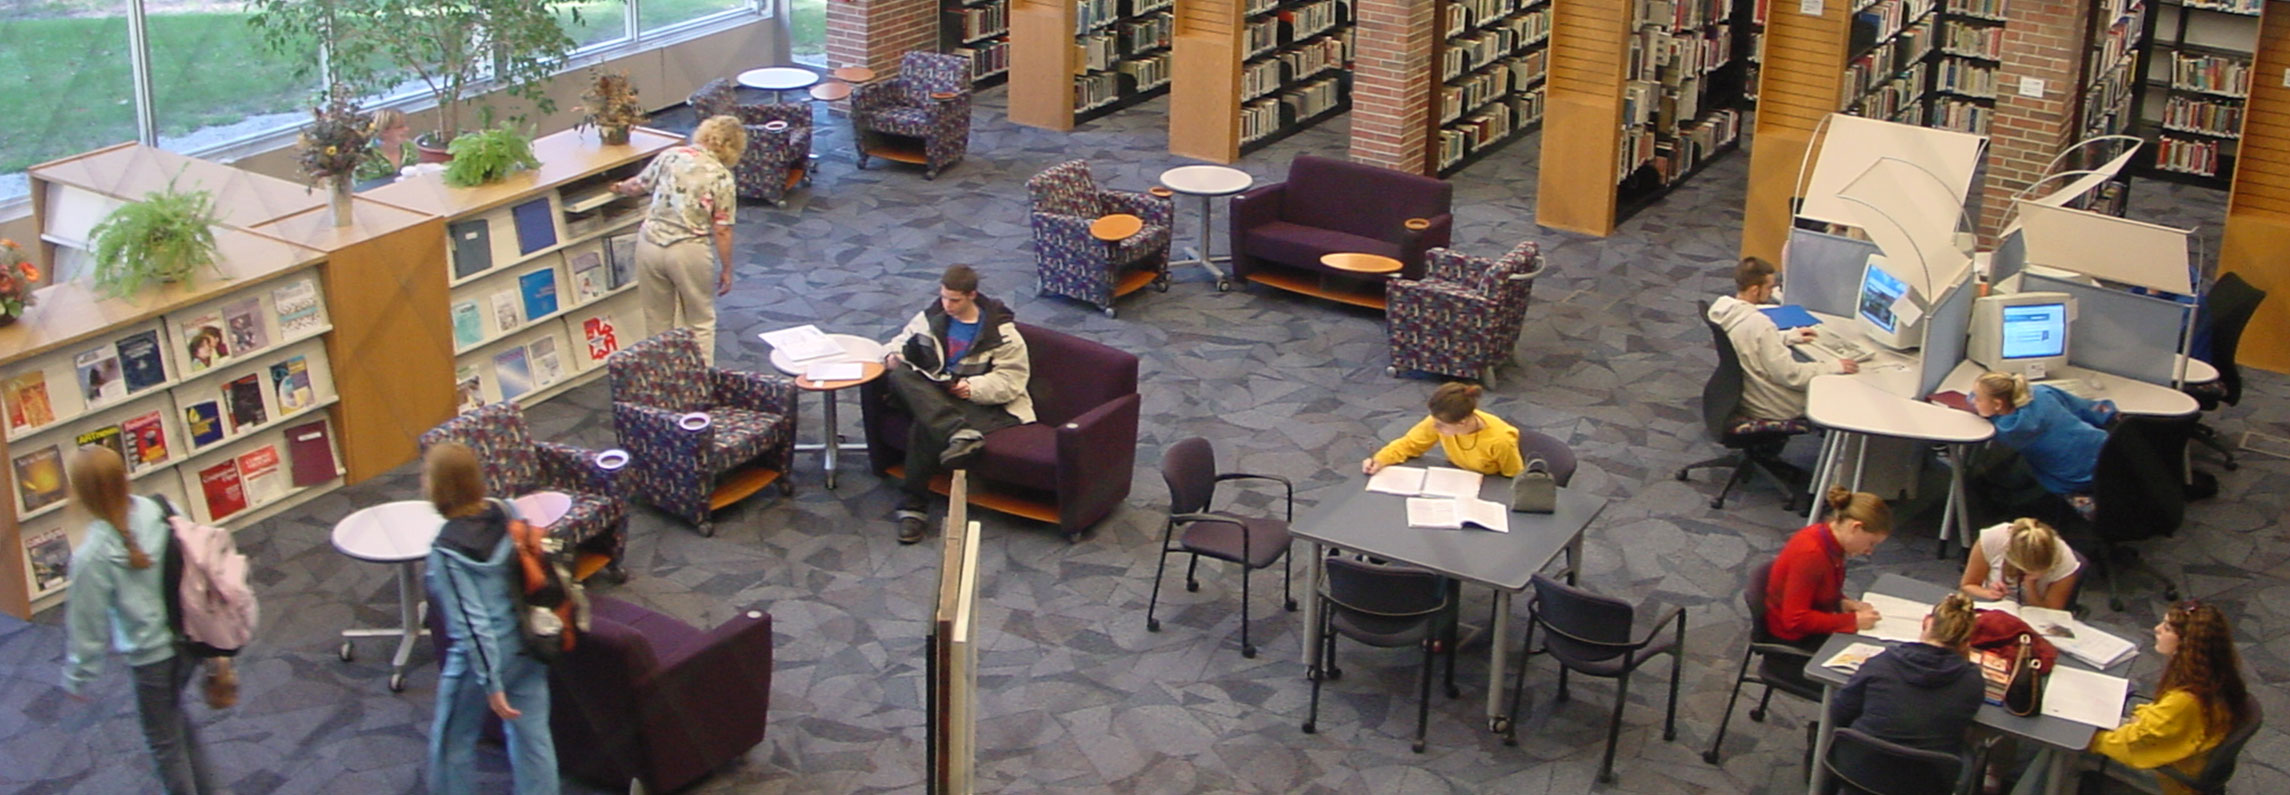 A view of the Harrison campus Library from the second floor.